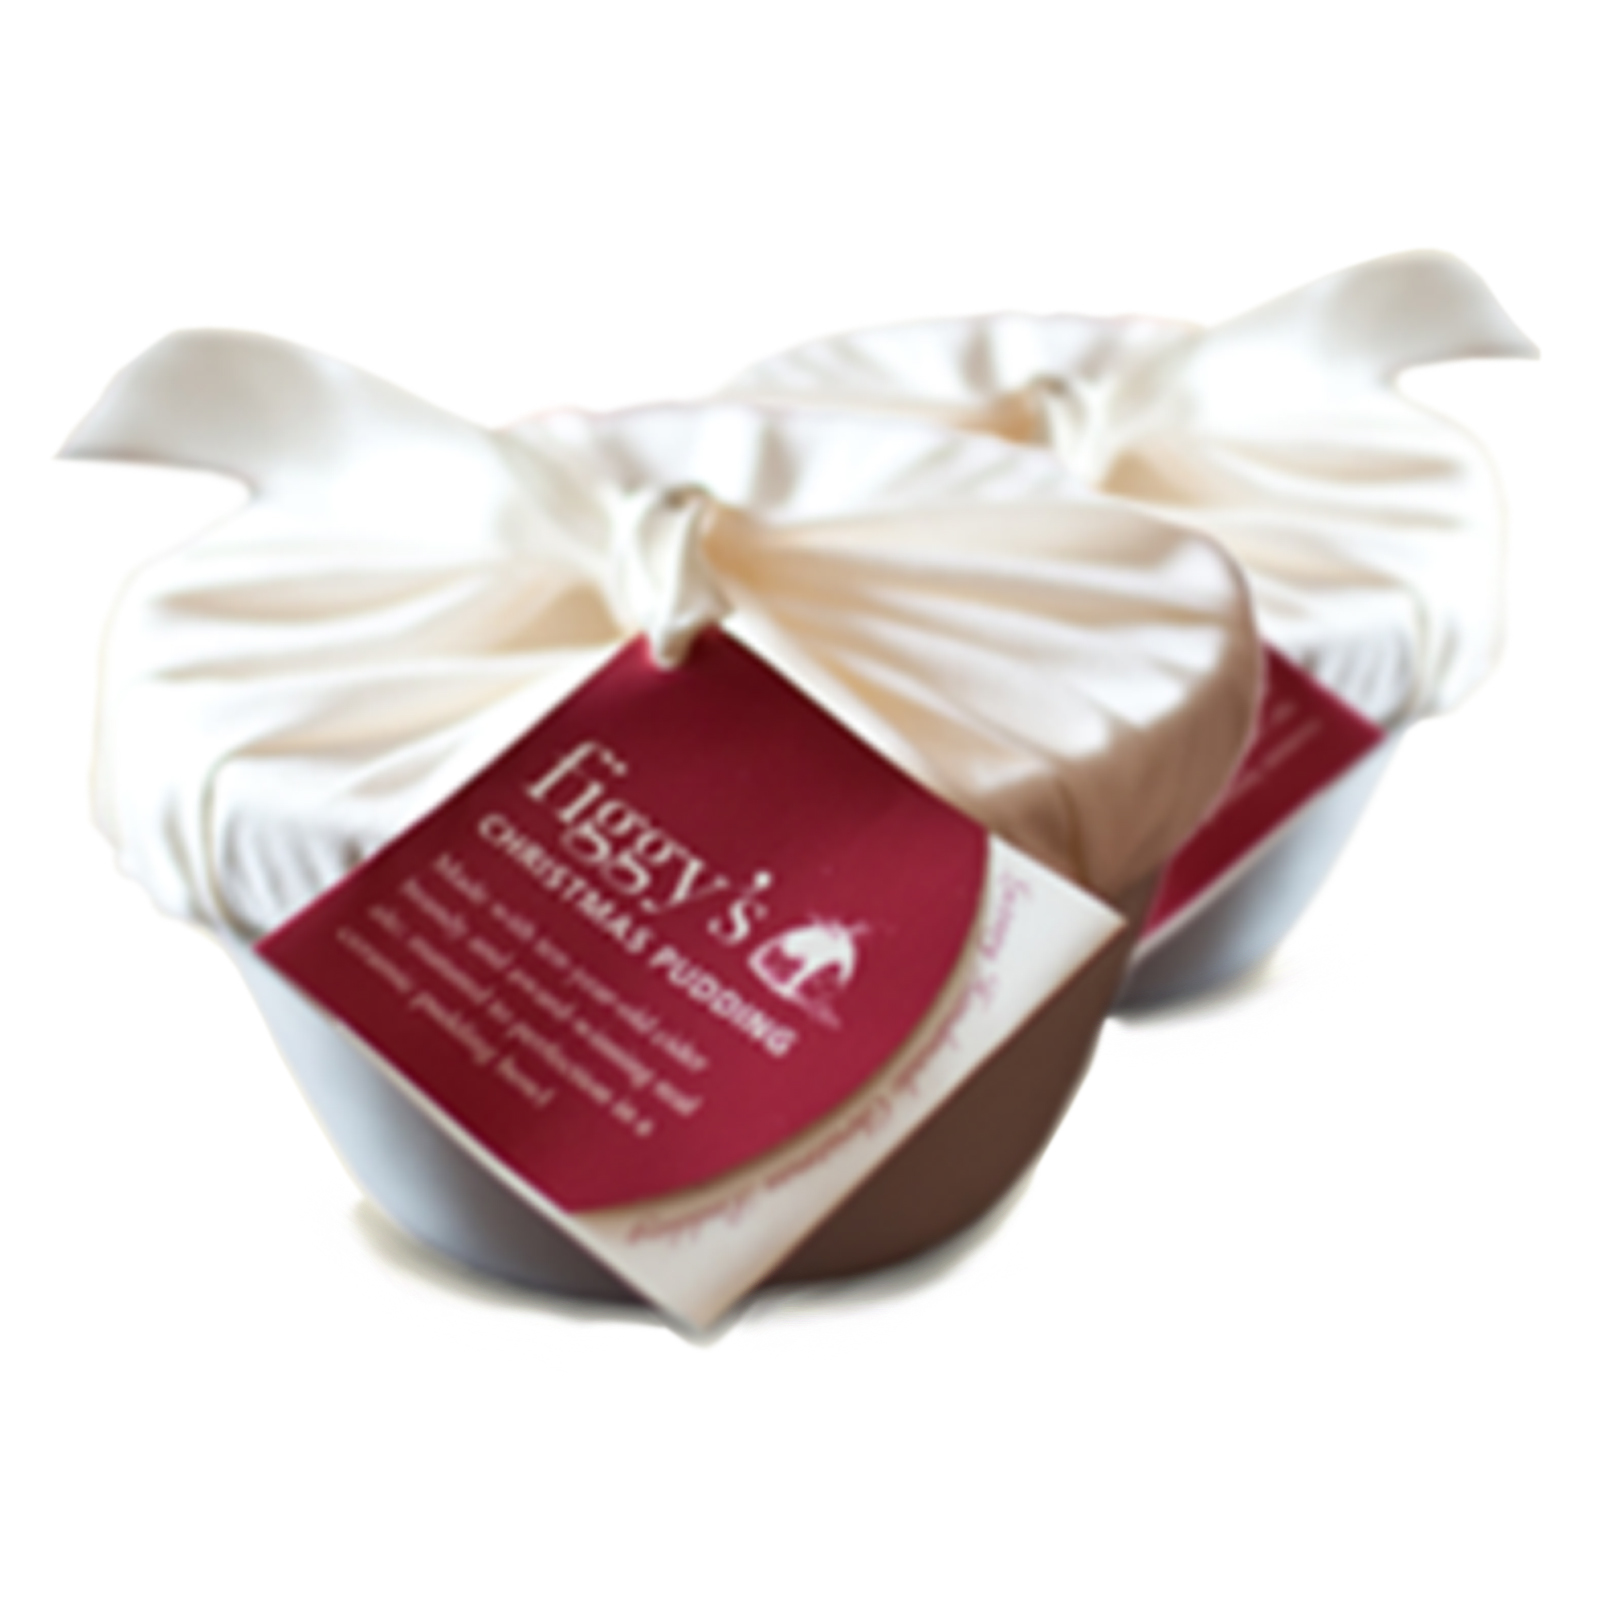 Figgy's Christmas Pudding  - Medium in Ceramic Bowl 550g